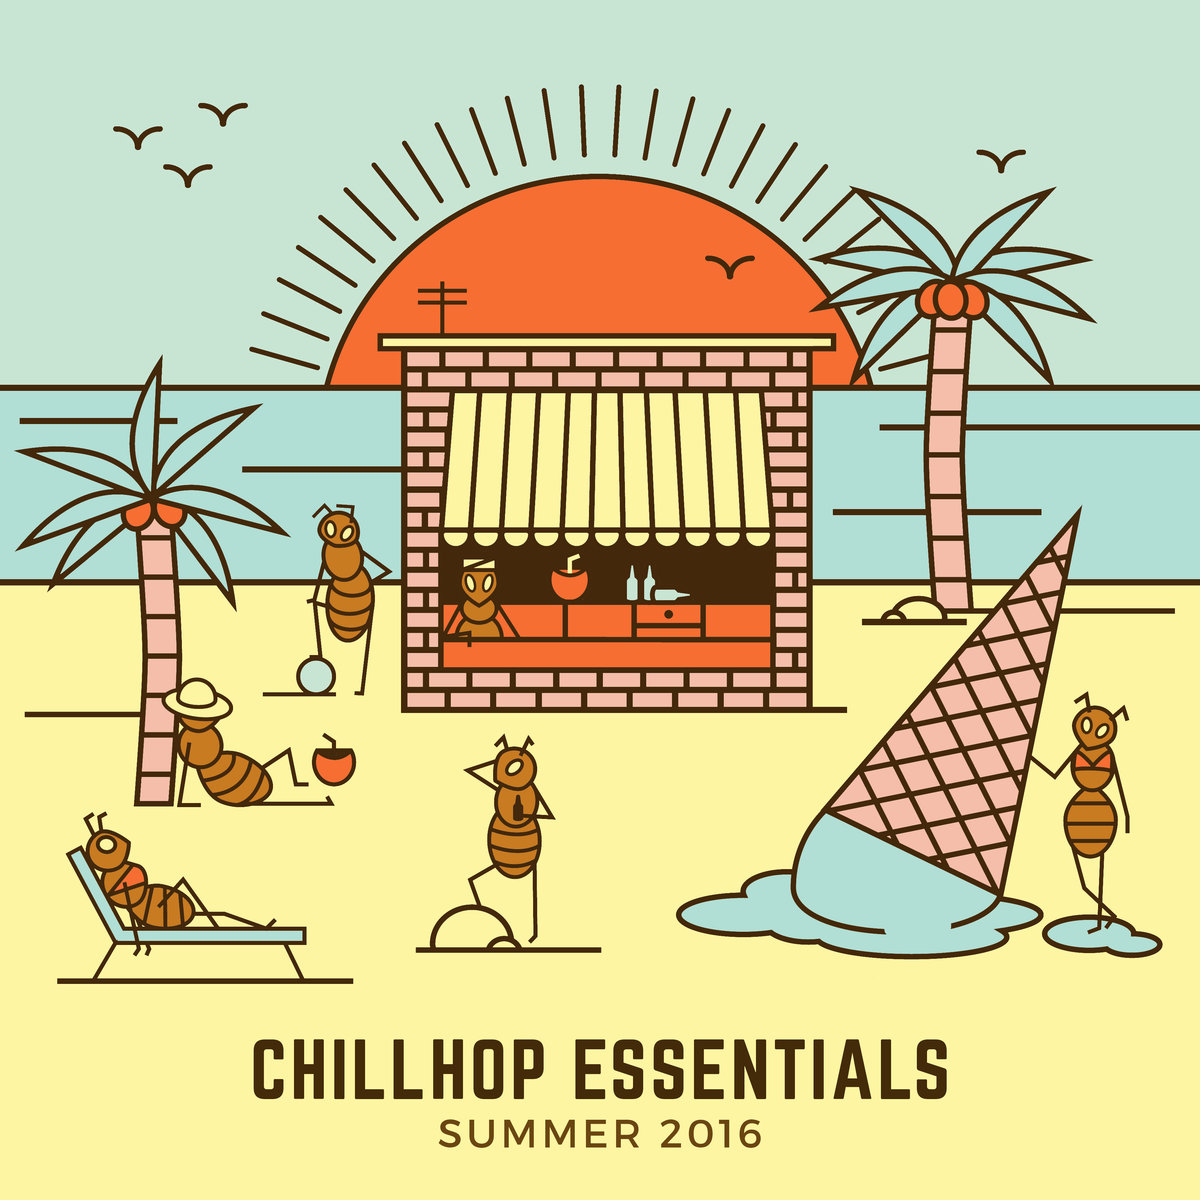 Stream___descarga_chillhop_essentials_-_summer_2016